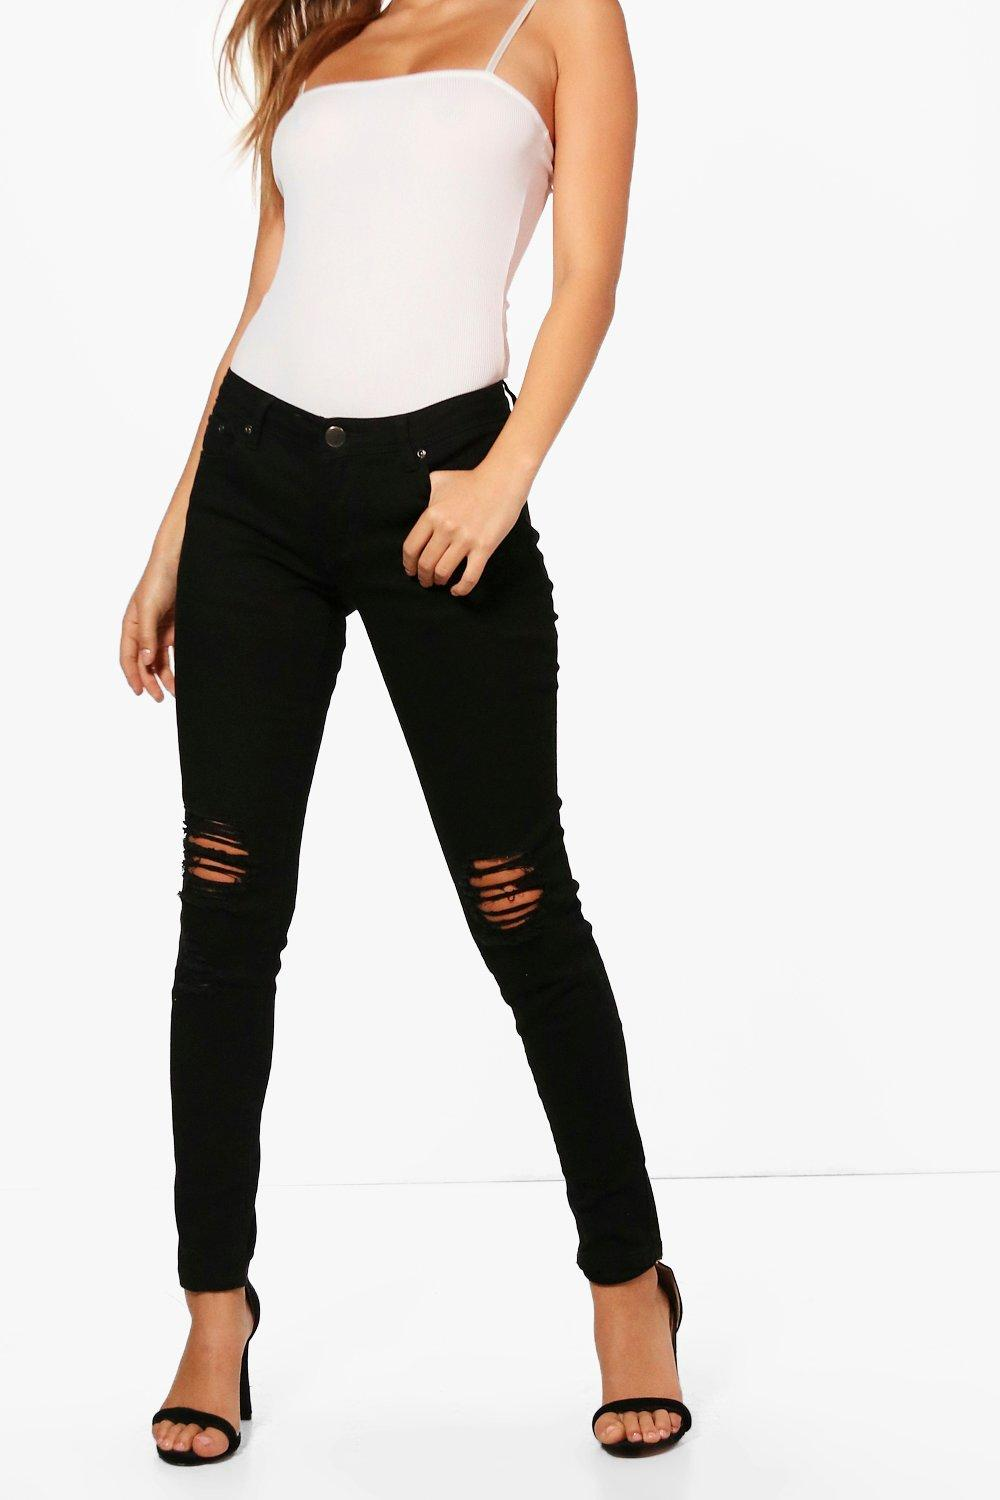 Laura Ripped Knee Black Skinny Jeans